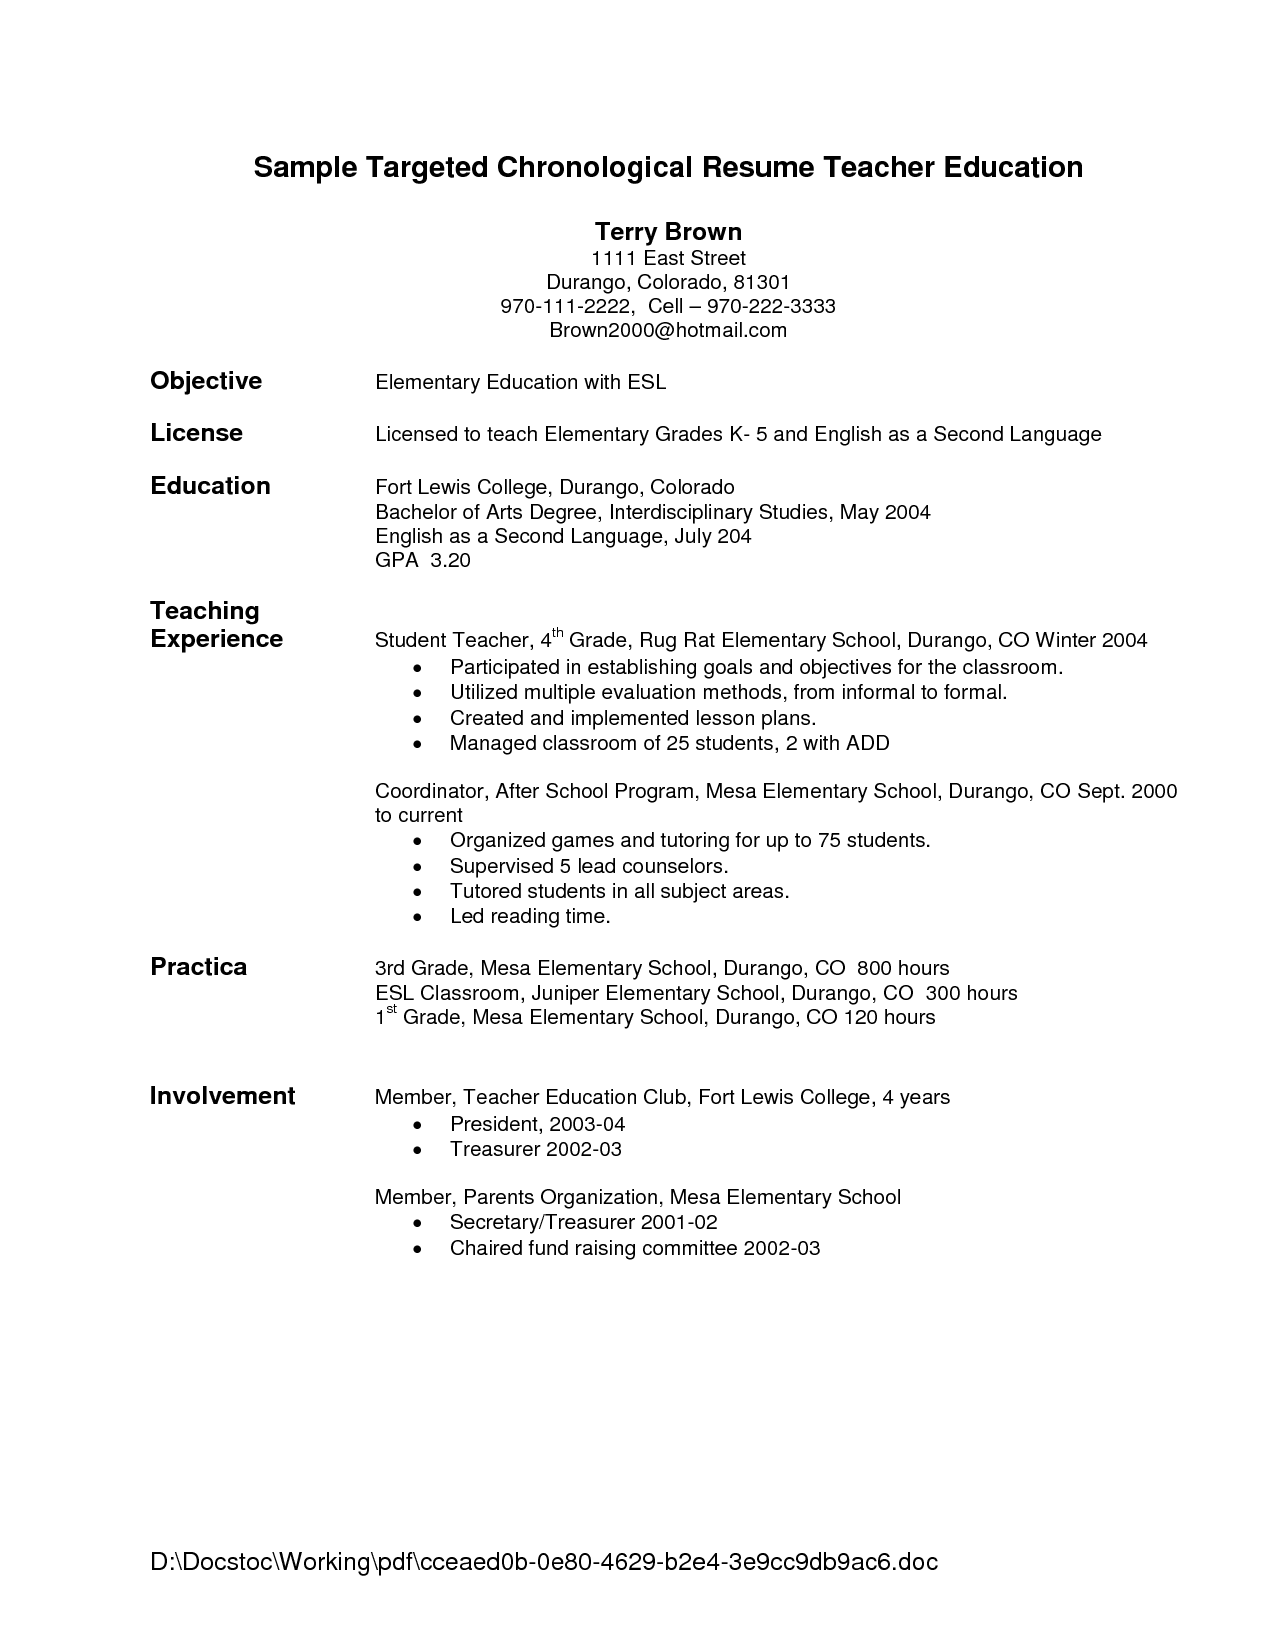 Skills Section On Resume Classy Art Teacher Resume Sample Free Secondary Example Format Home Sale Design Inspiration